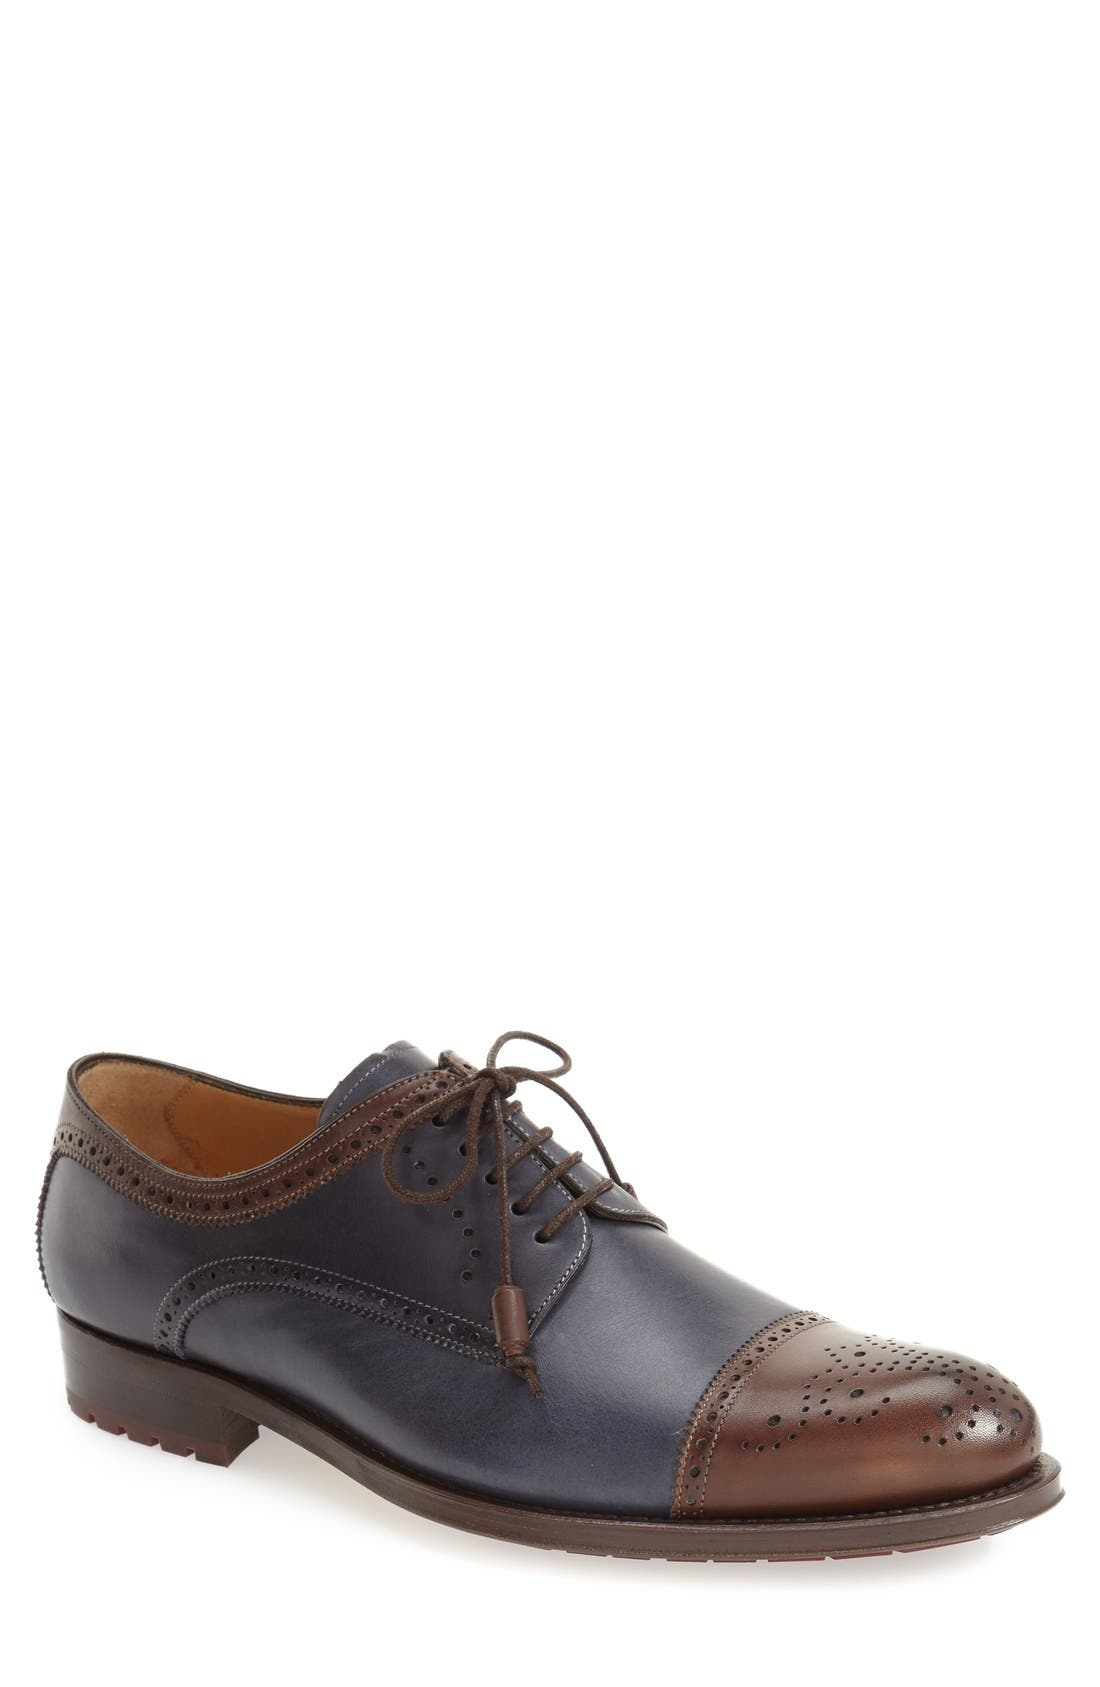 'Carlino' Cap Toe Oxford,                         Main,                         color, BROWN/ BLUE